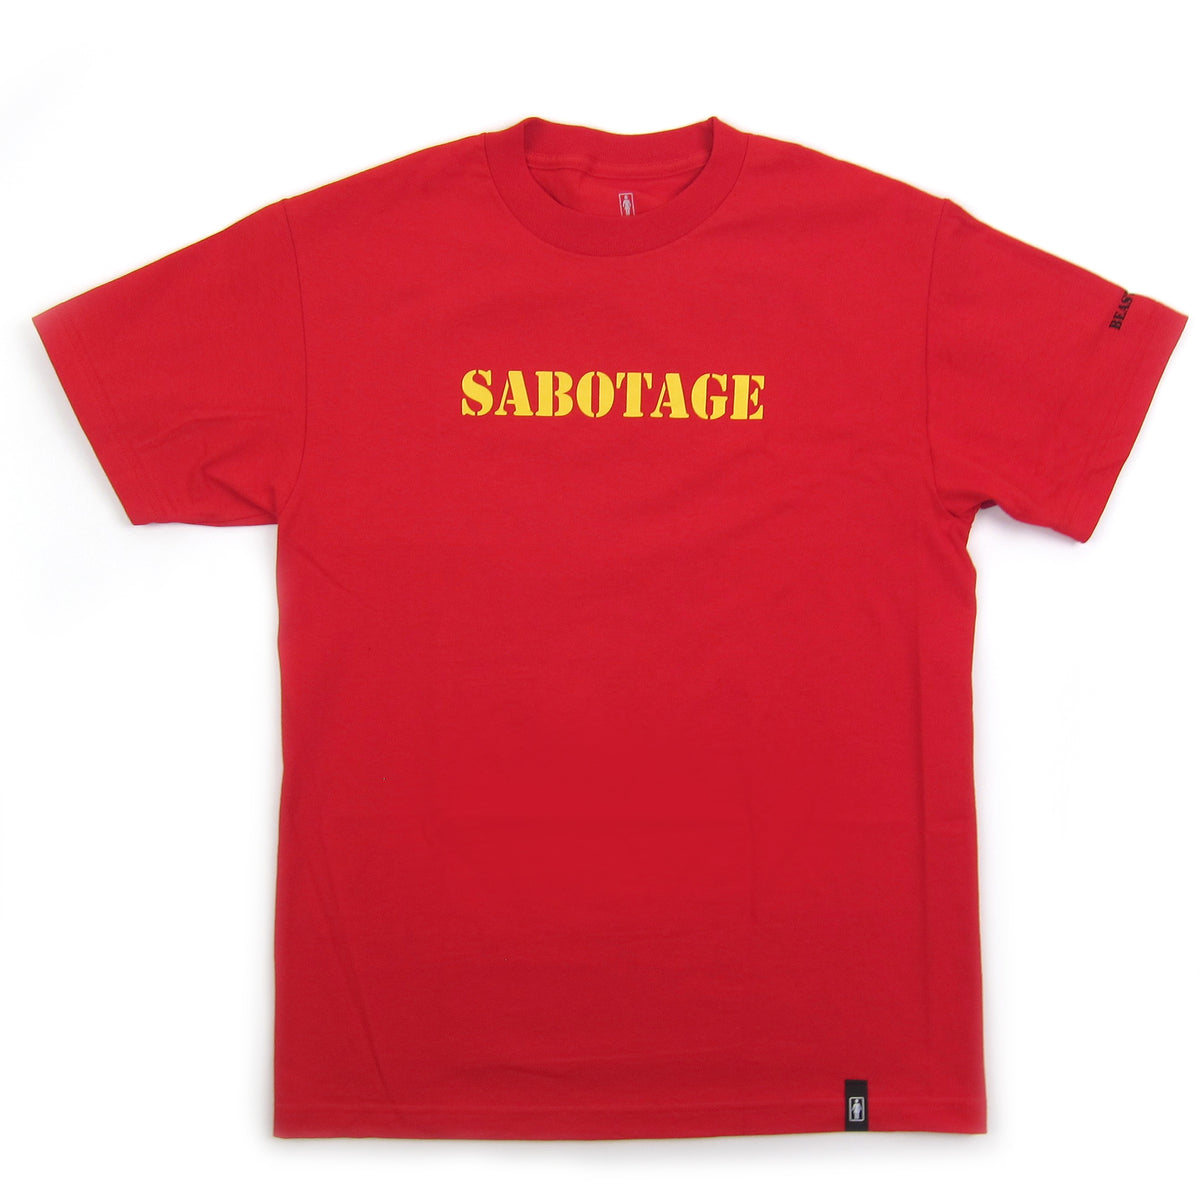 Beastie Boys: Sabotage Shirt By Girl Skateboards / Spike Jonze - Red